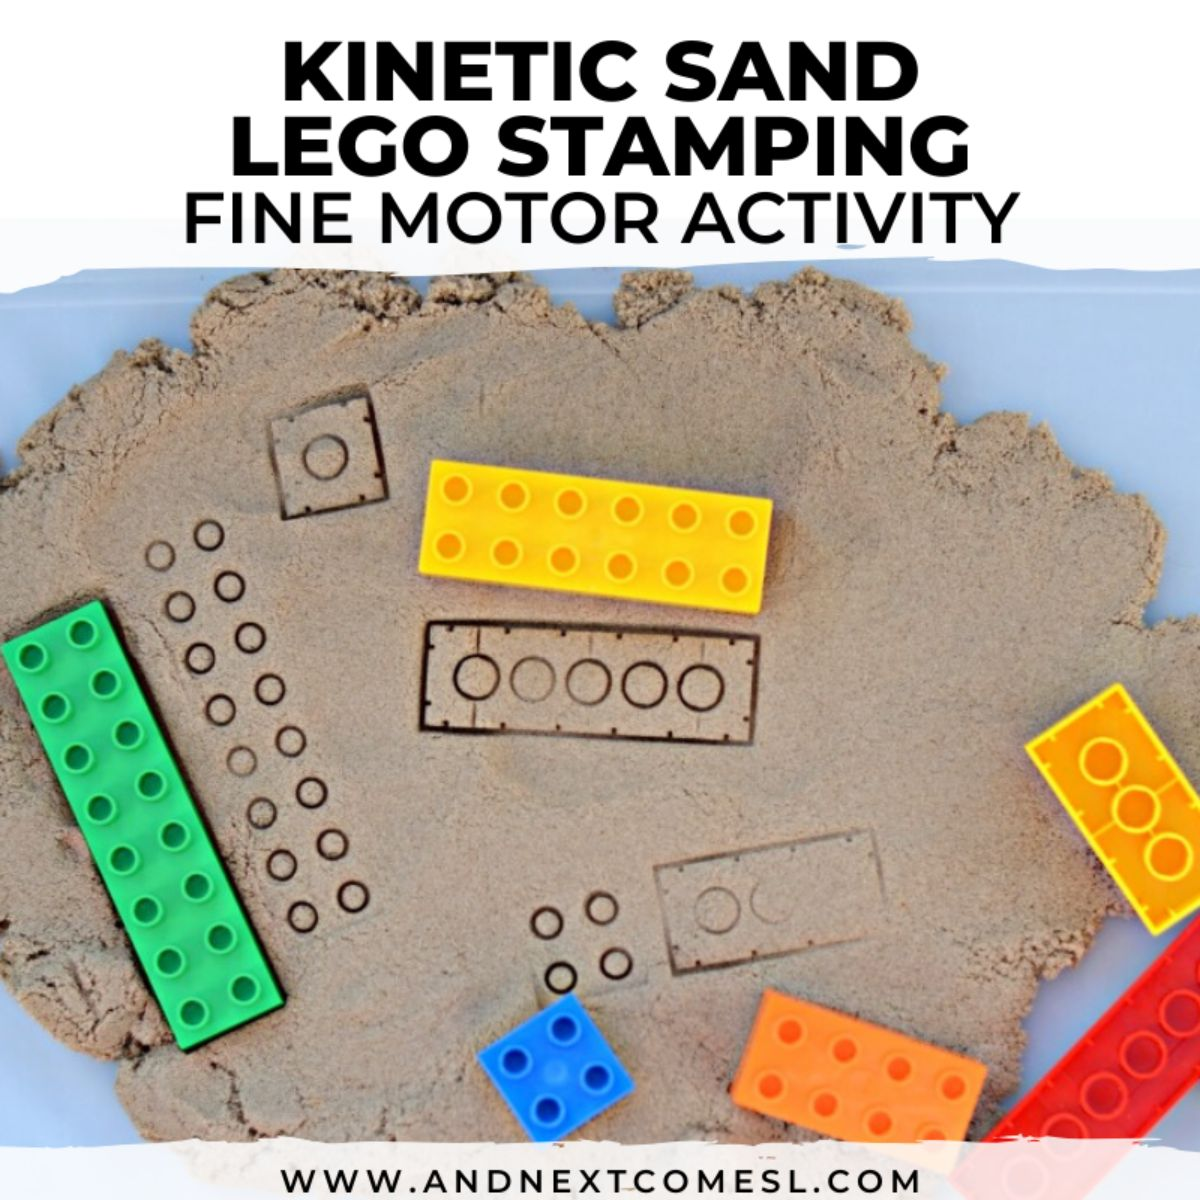 """the text reads """"Kinetic sand lego stamping fine motor activity"""" the image is of sand with lego prints in it. Lego bricks are scattered around"""